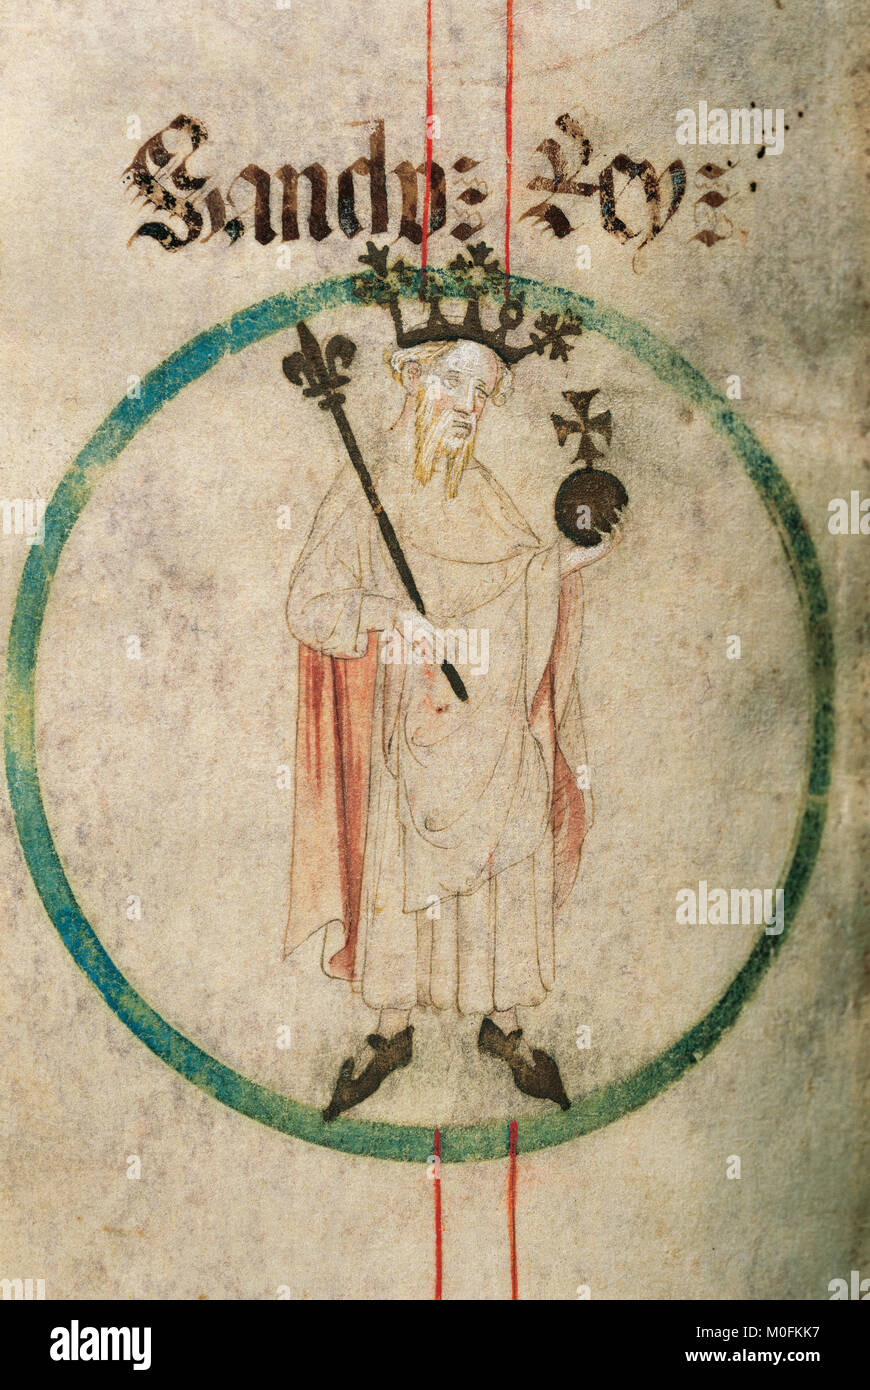 Sancho Ramirez (1042-1094). King of Aragon from 1063-1094. Genealogy of the Crown of Aragon. Parchament. 14th-15th - Stock Image